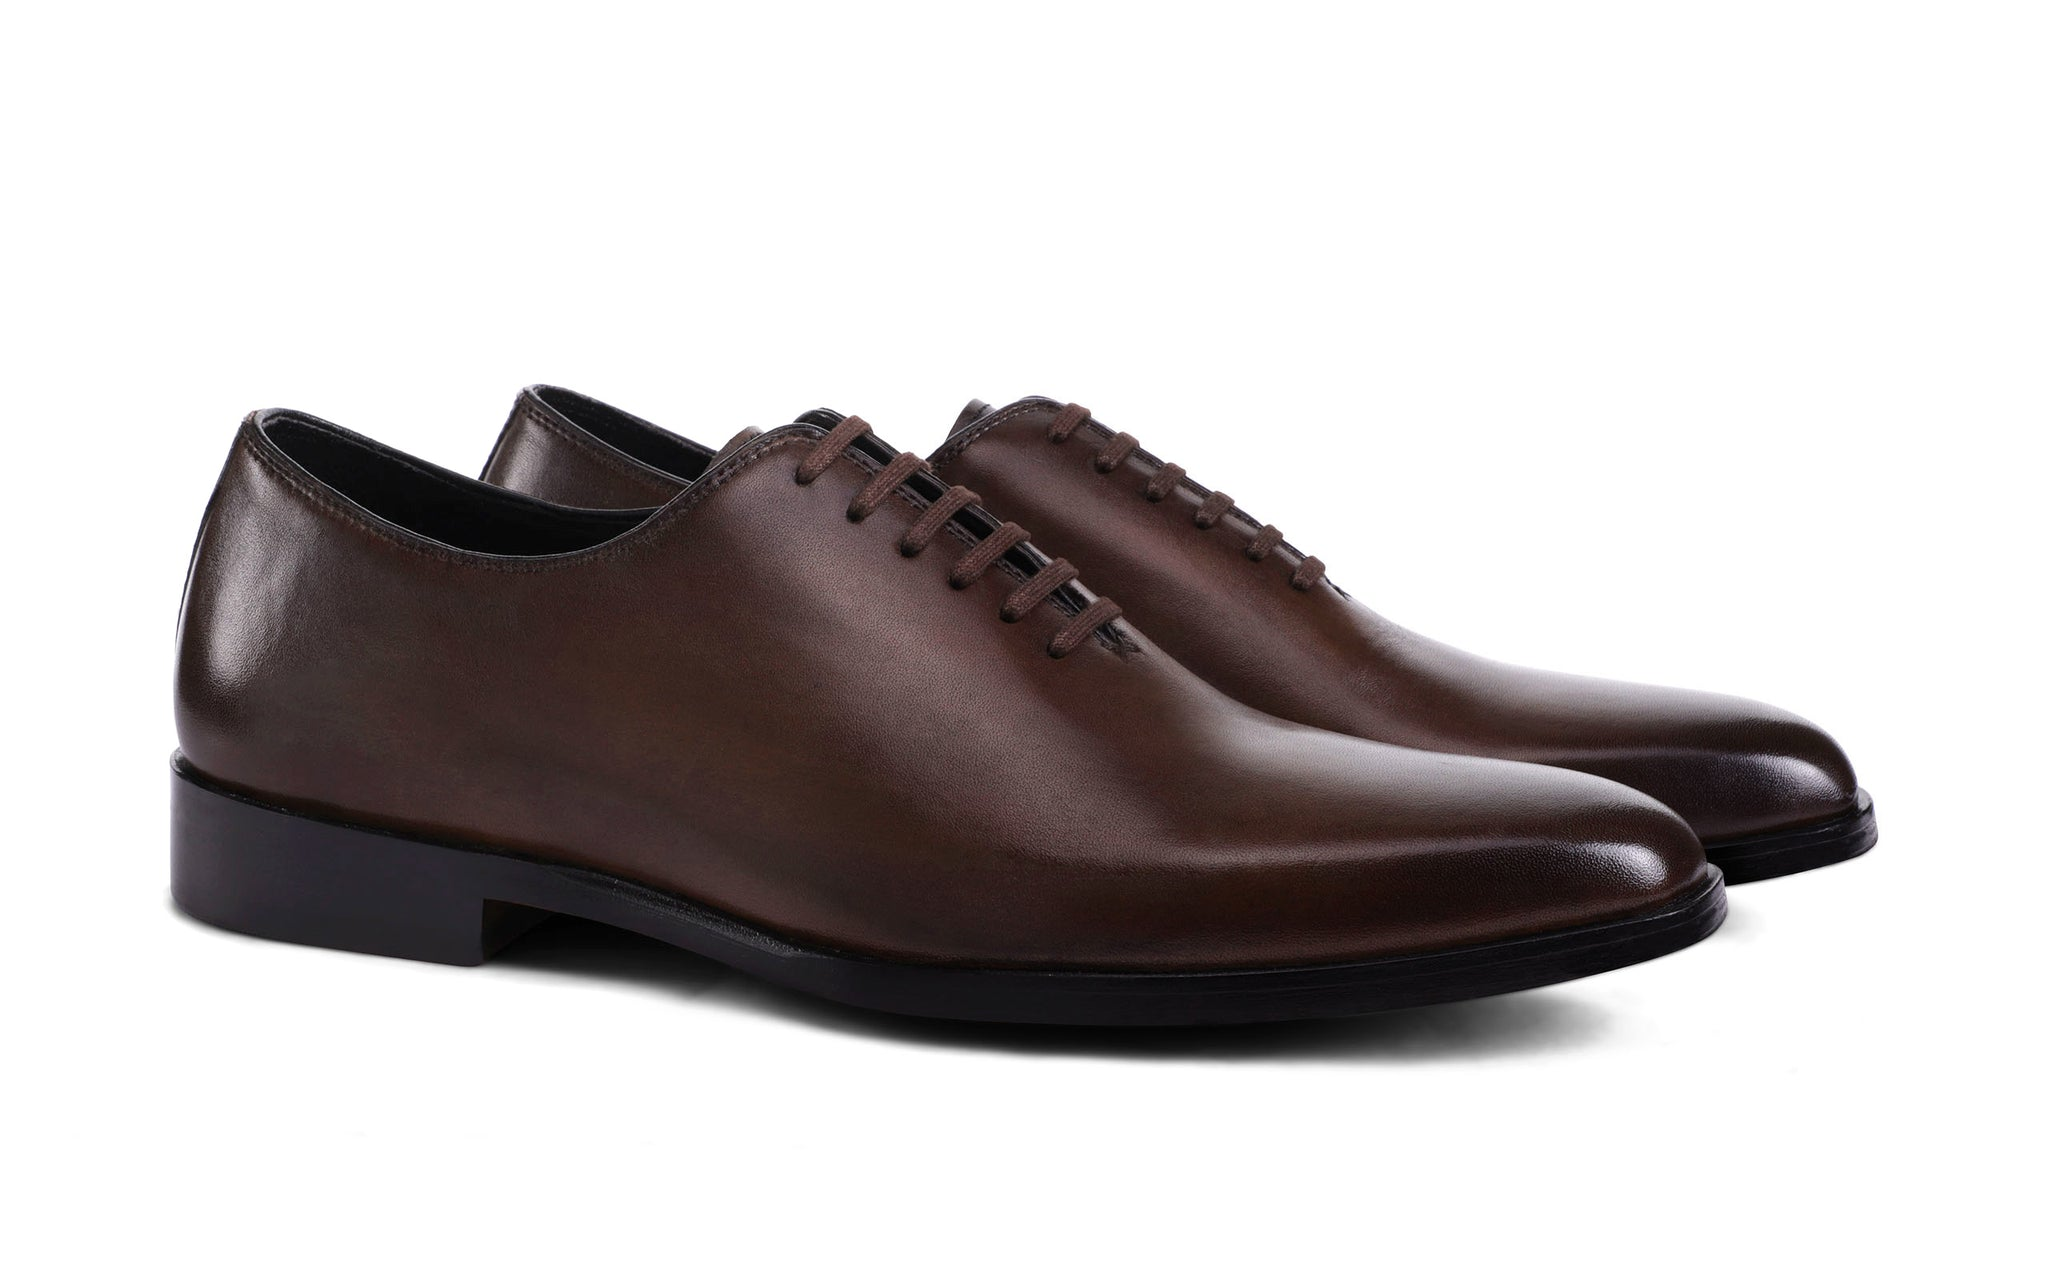 chestnut-Italian-leather-shoes